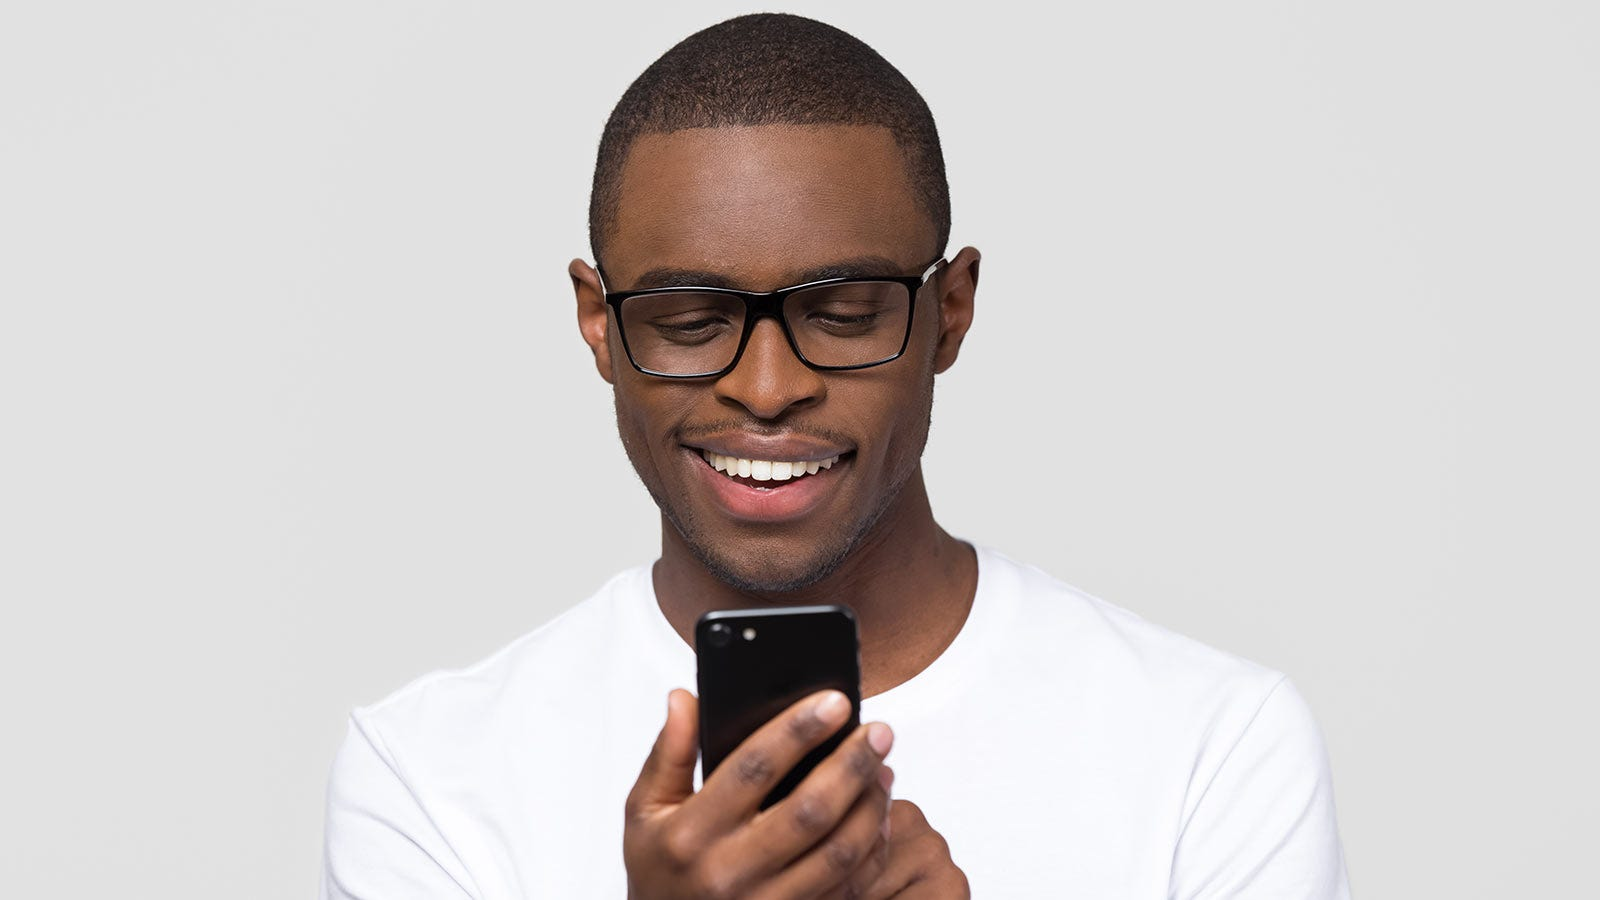 A man looking at his phone and smiling.